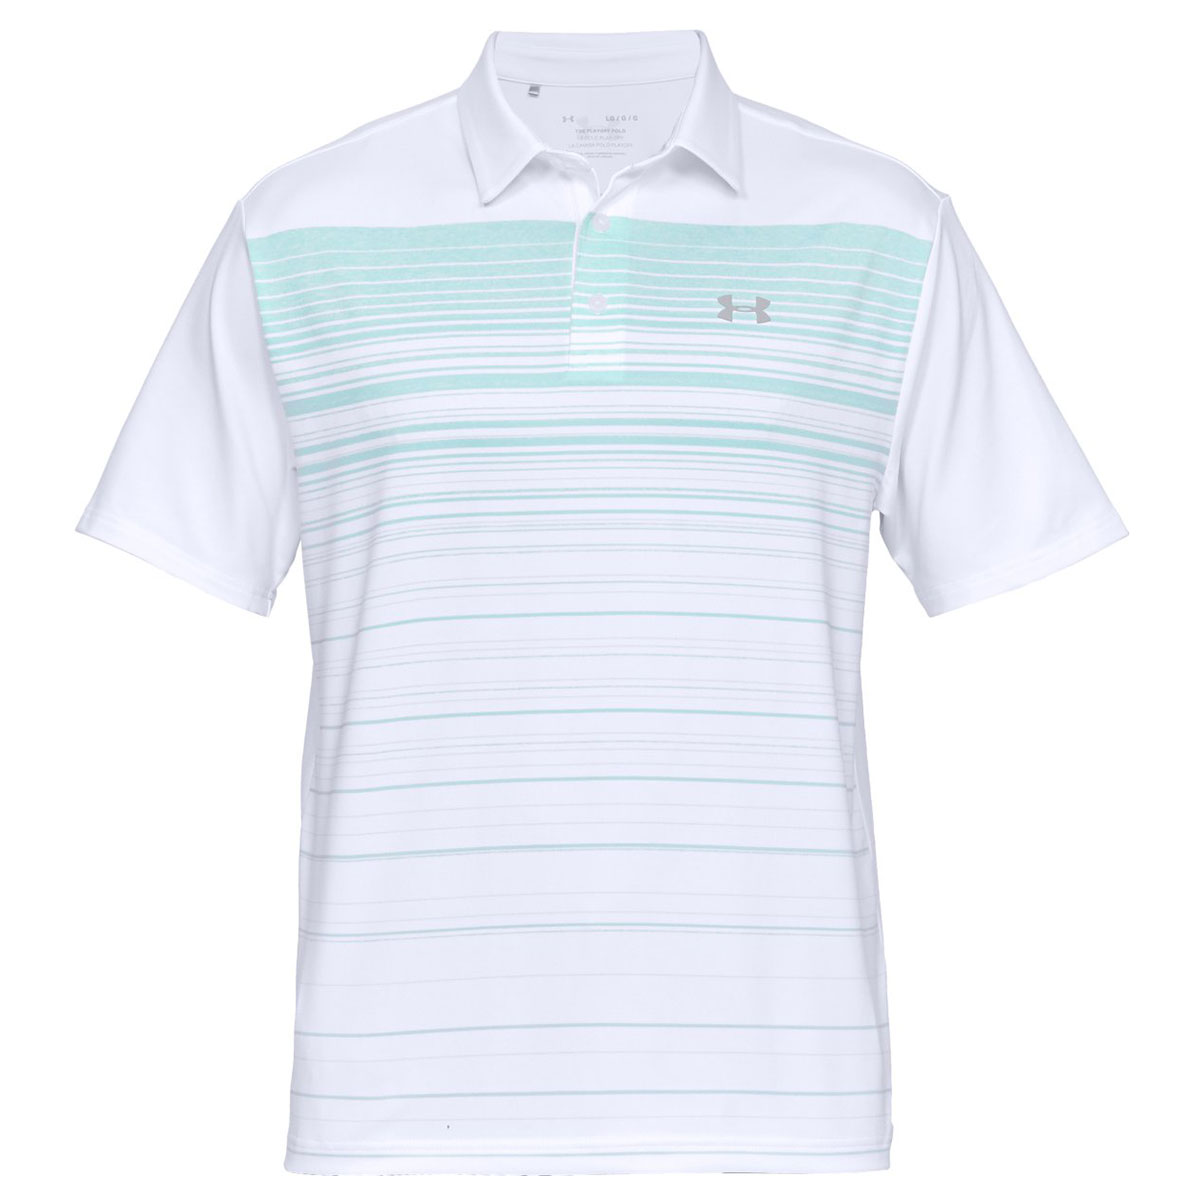 Under-Armour-Mens-2019-Playoff-Polo-2-0-Breathable-Light-Stretch-Polo-Shirt thumbnail 142